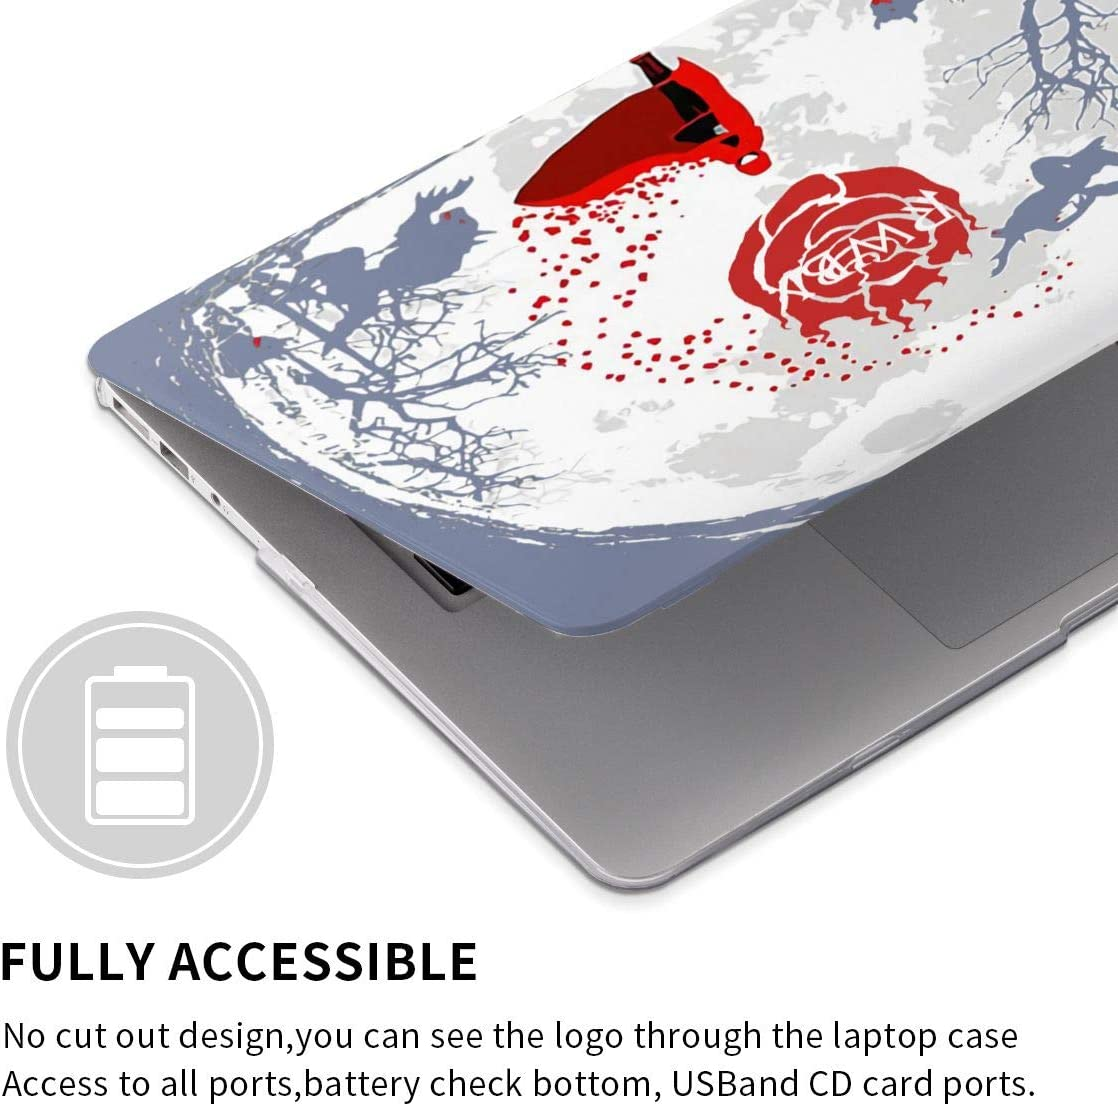 RWBY MacBook Case,Scratch Resistant Waterproof Laptop Hard Shell Cover Protective Case Release A1466 A1369 A1932 A1990 for Apple MacBook air13